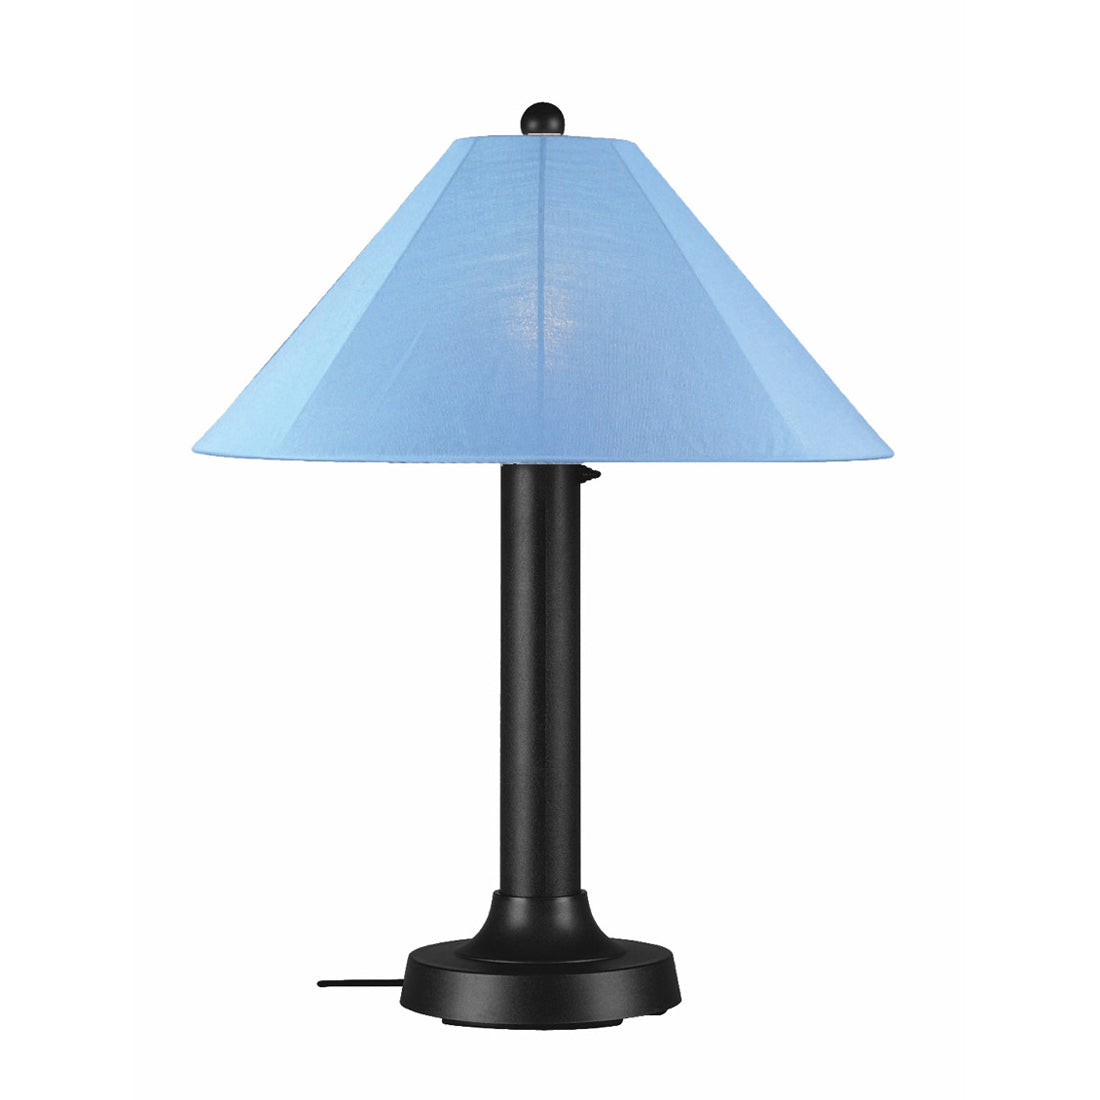 "Catalina Table Lamp 39640 with 3"" black body and sky blue Sunbrella shade fabric"